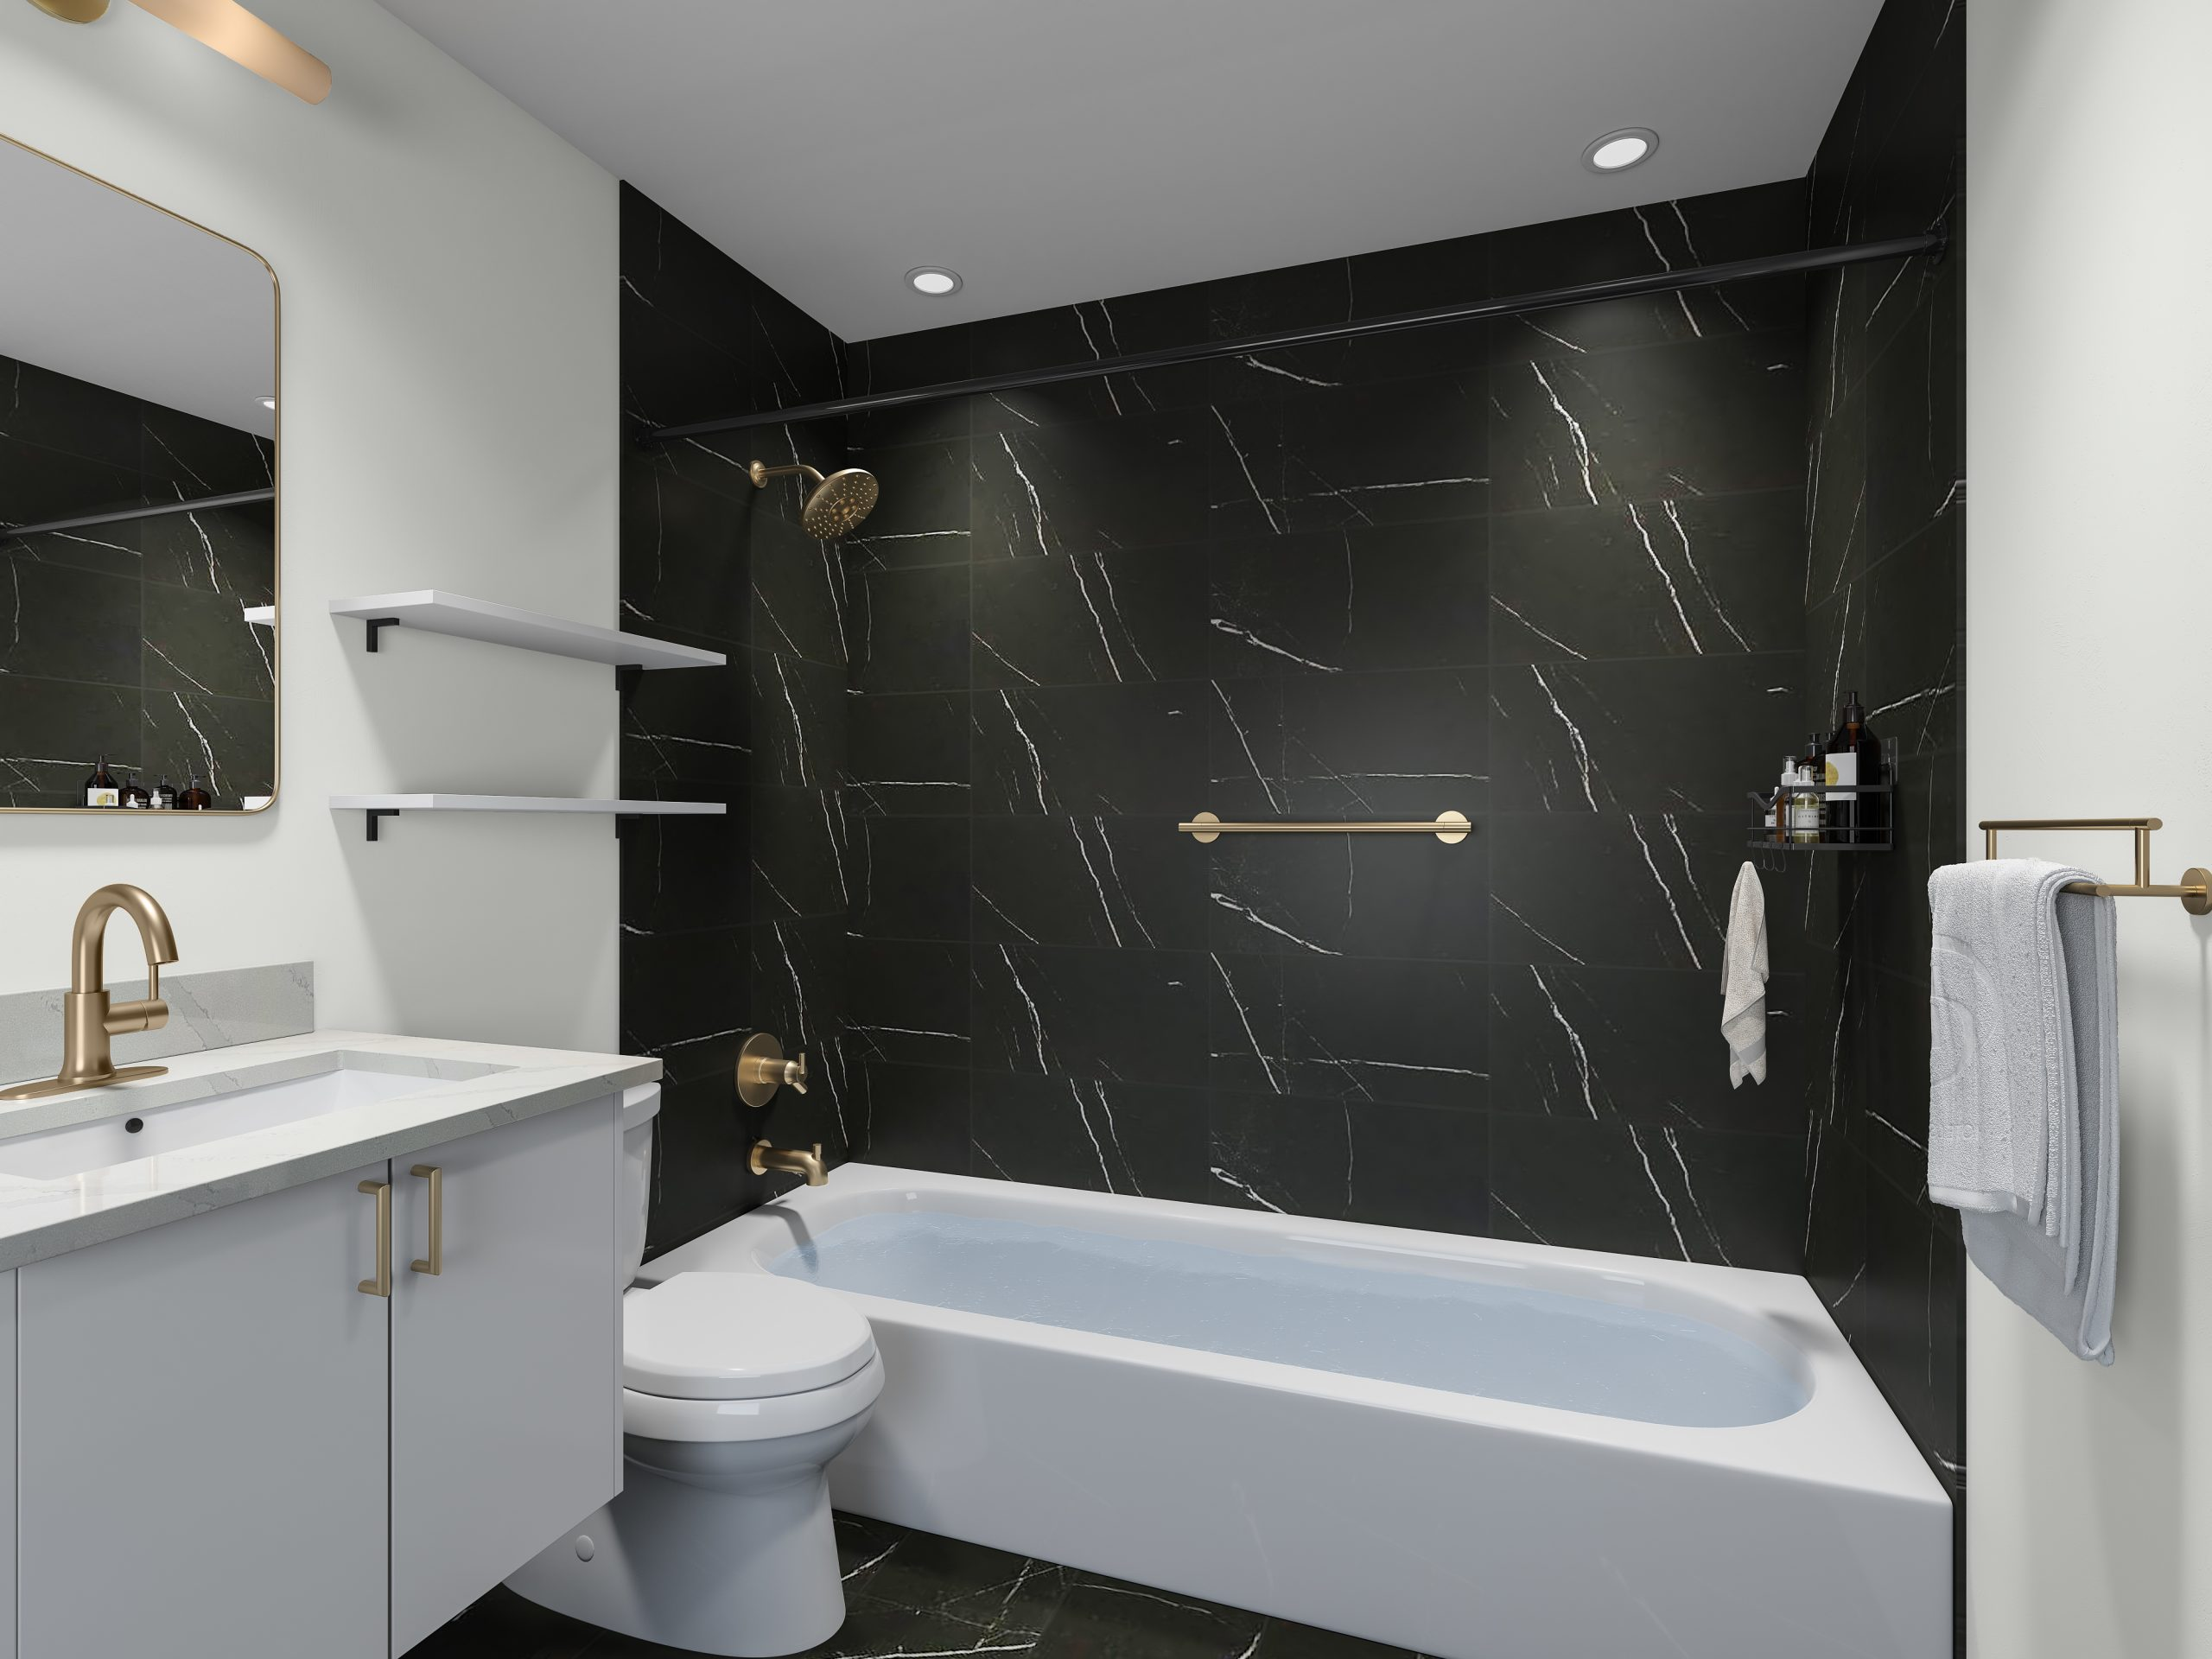 NYC B&W Meets Old Town Alexandria $24,838.60